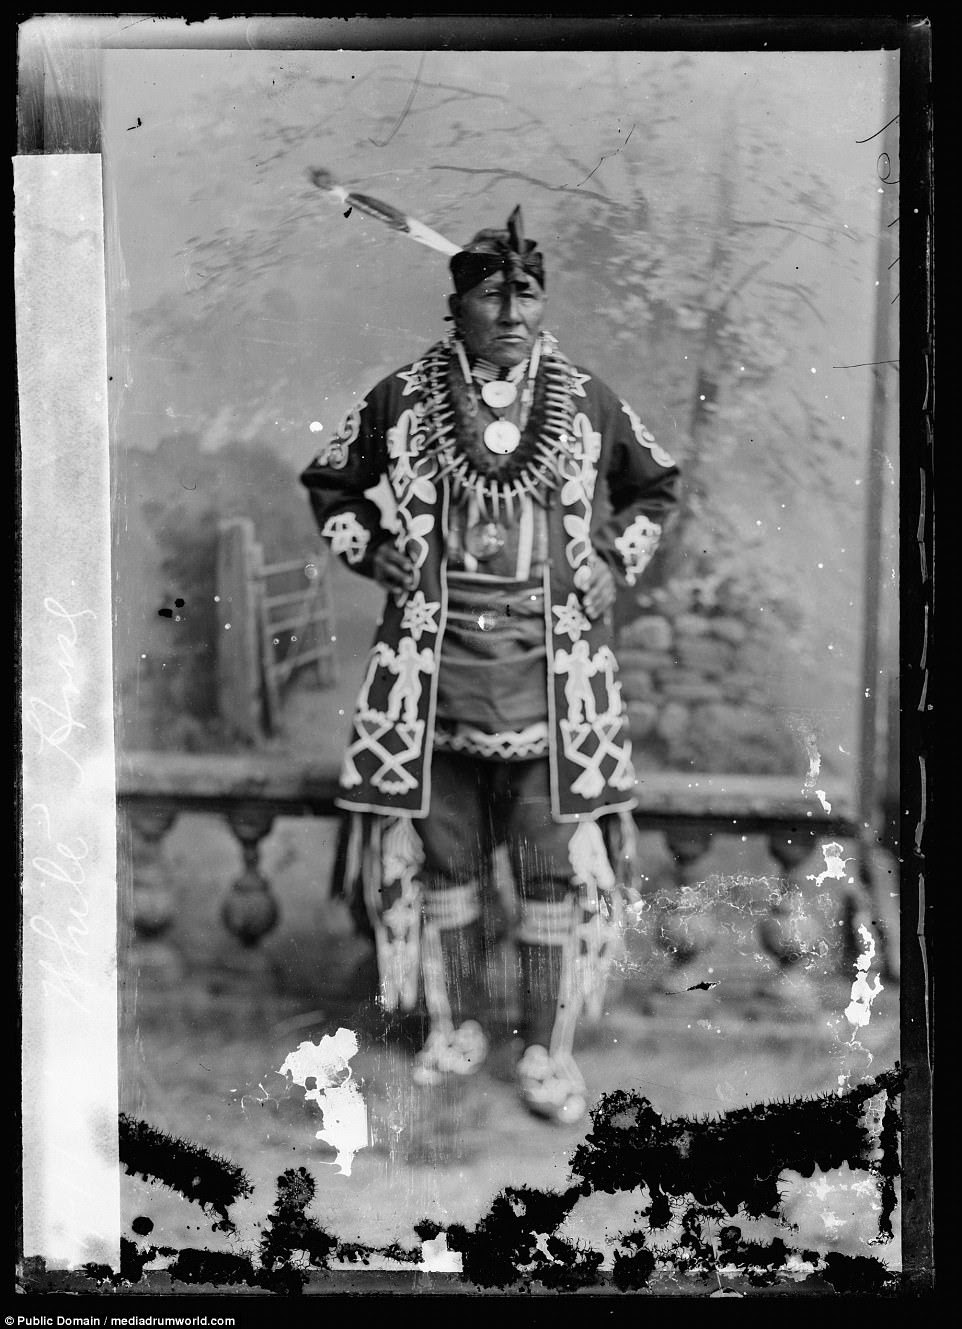 White Horse, chief of the Kiowa people, in 1894. Most of the pictures were taken between 1865 and 1915